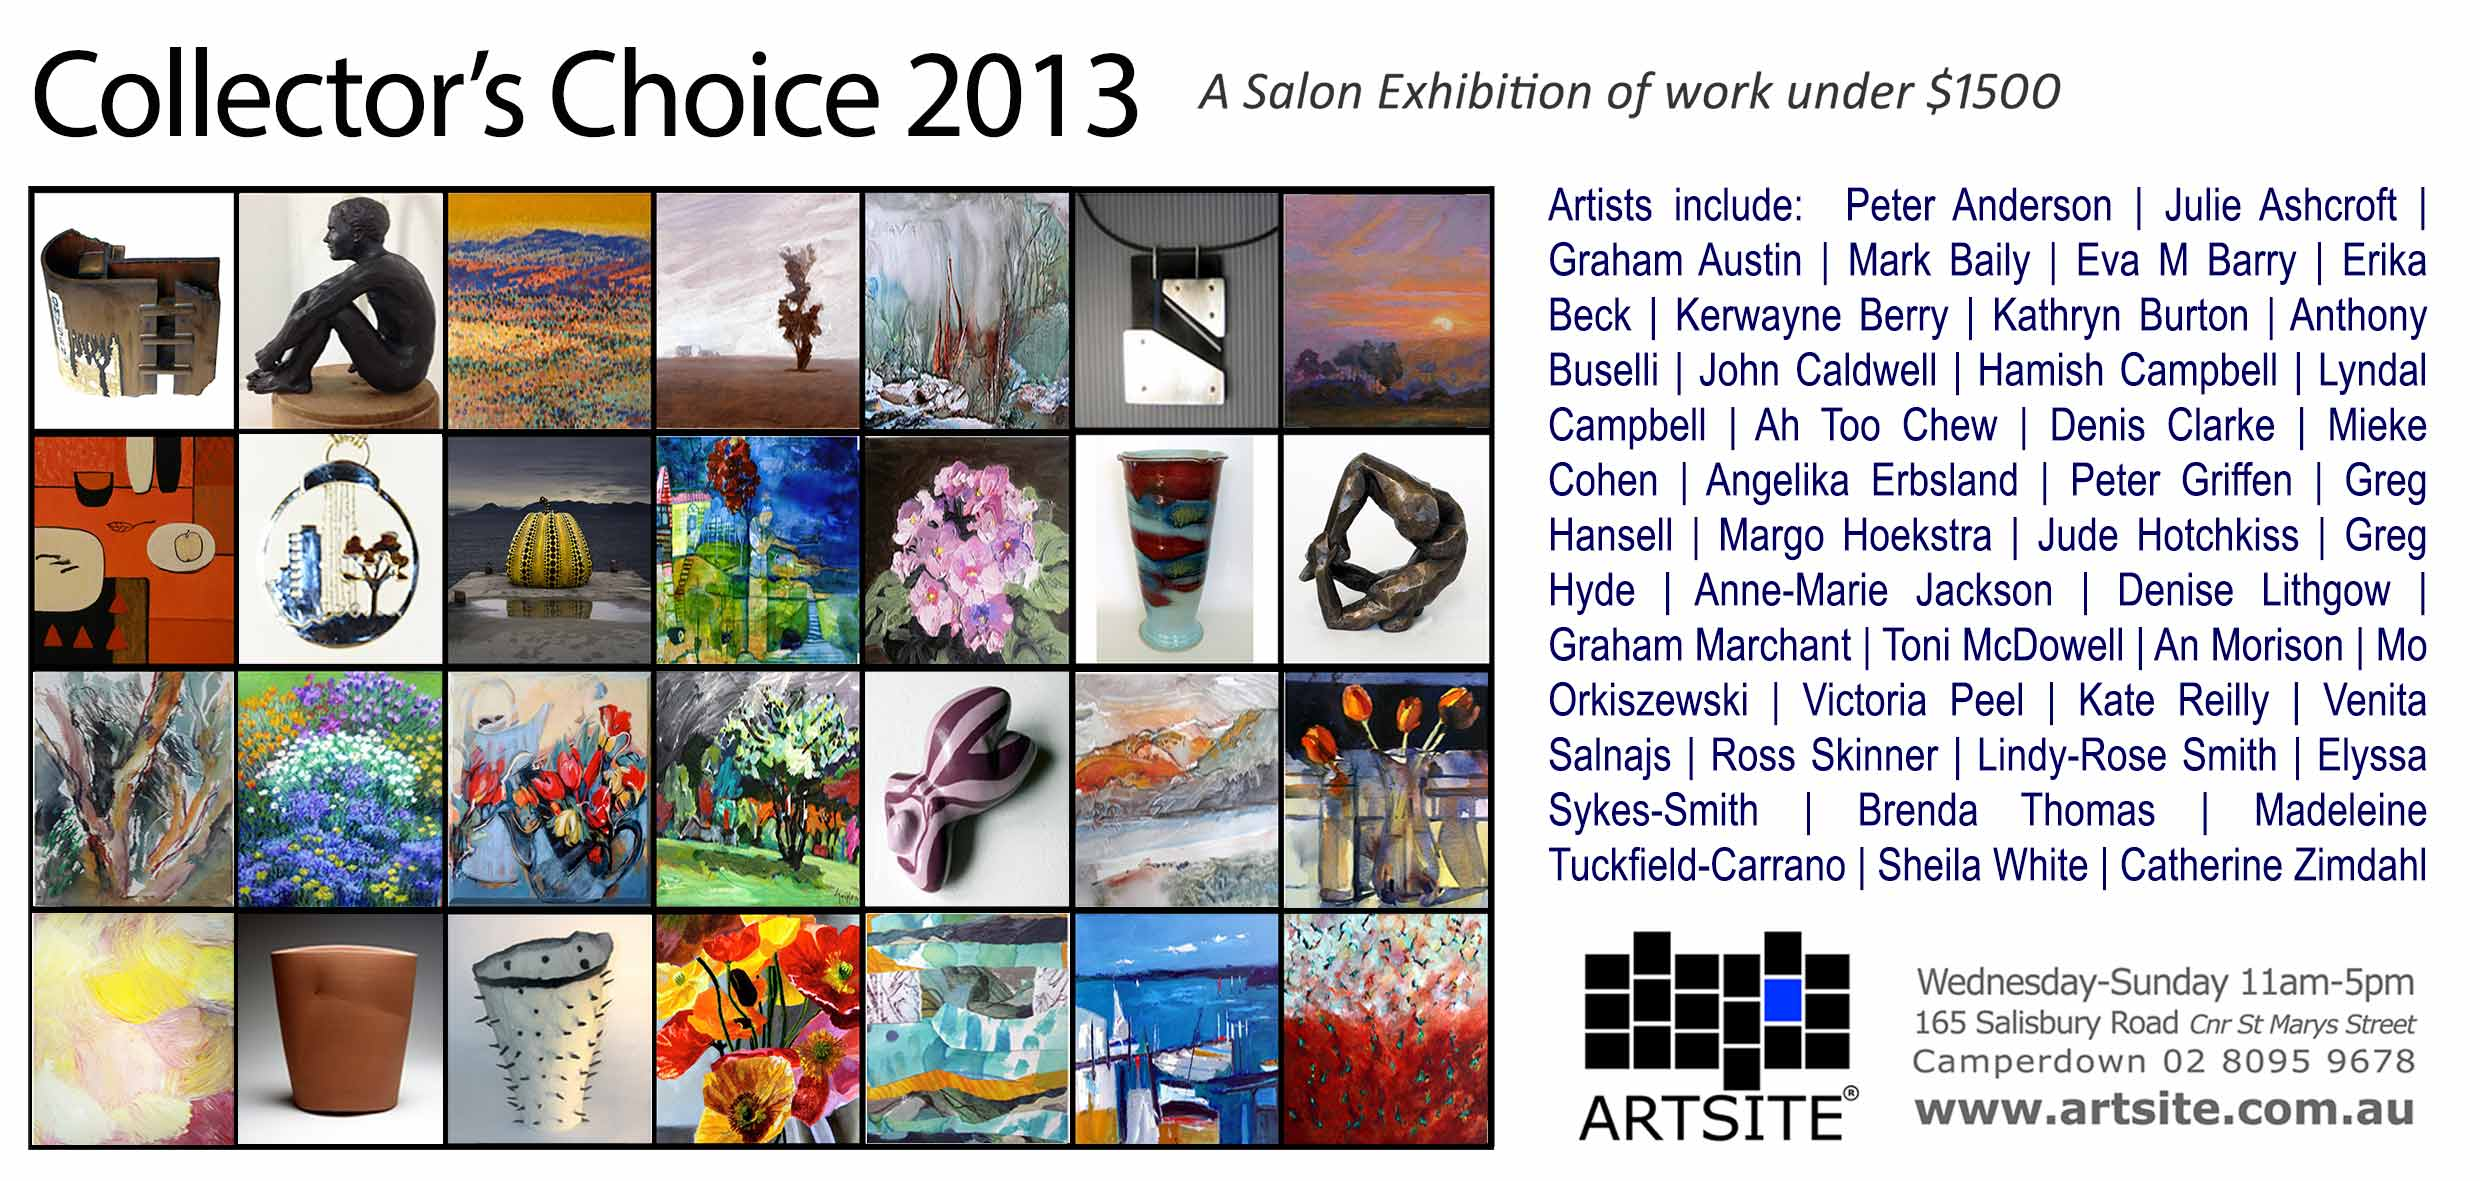 View Exhibition at Artsite Gallery, Sydney: 30 November - 15 December 2013. Collectors Choice 2013